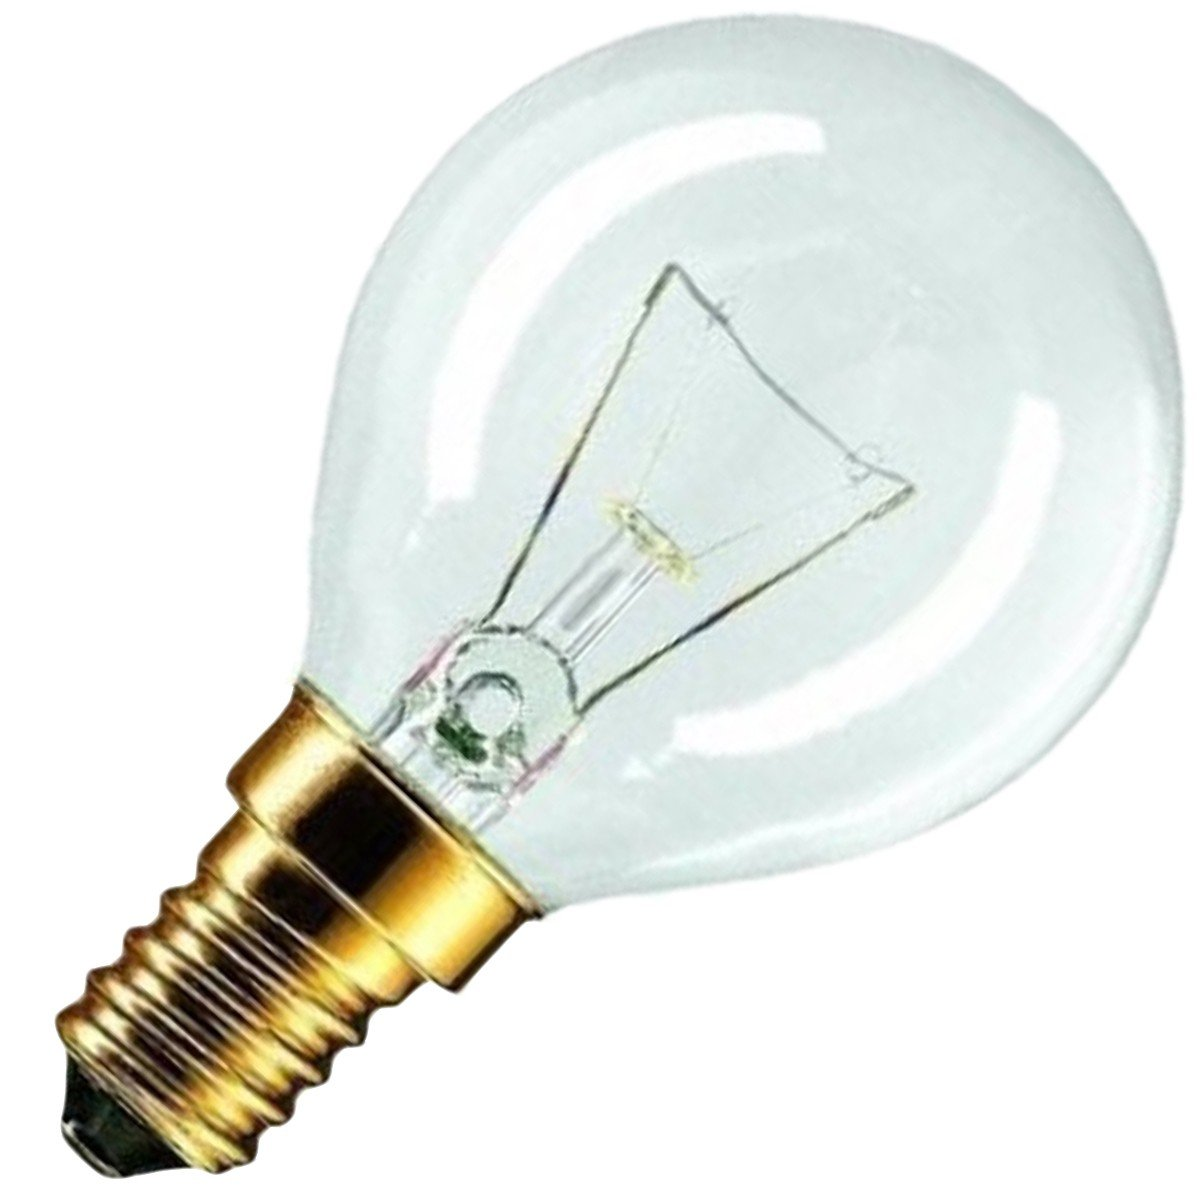 Philips 40w SES Oven Bulb. Genuine Part Number 00057874 [Energy Class F] [Energy Class F]